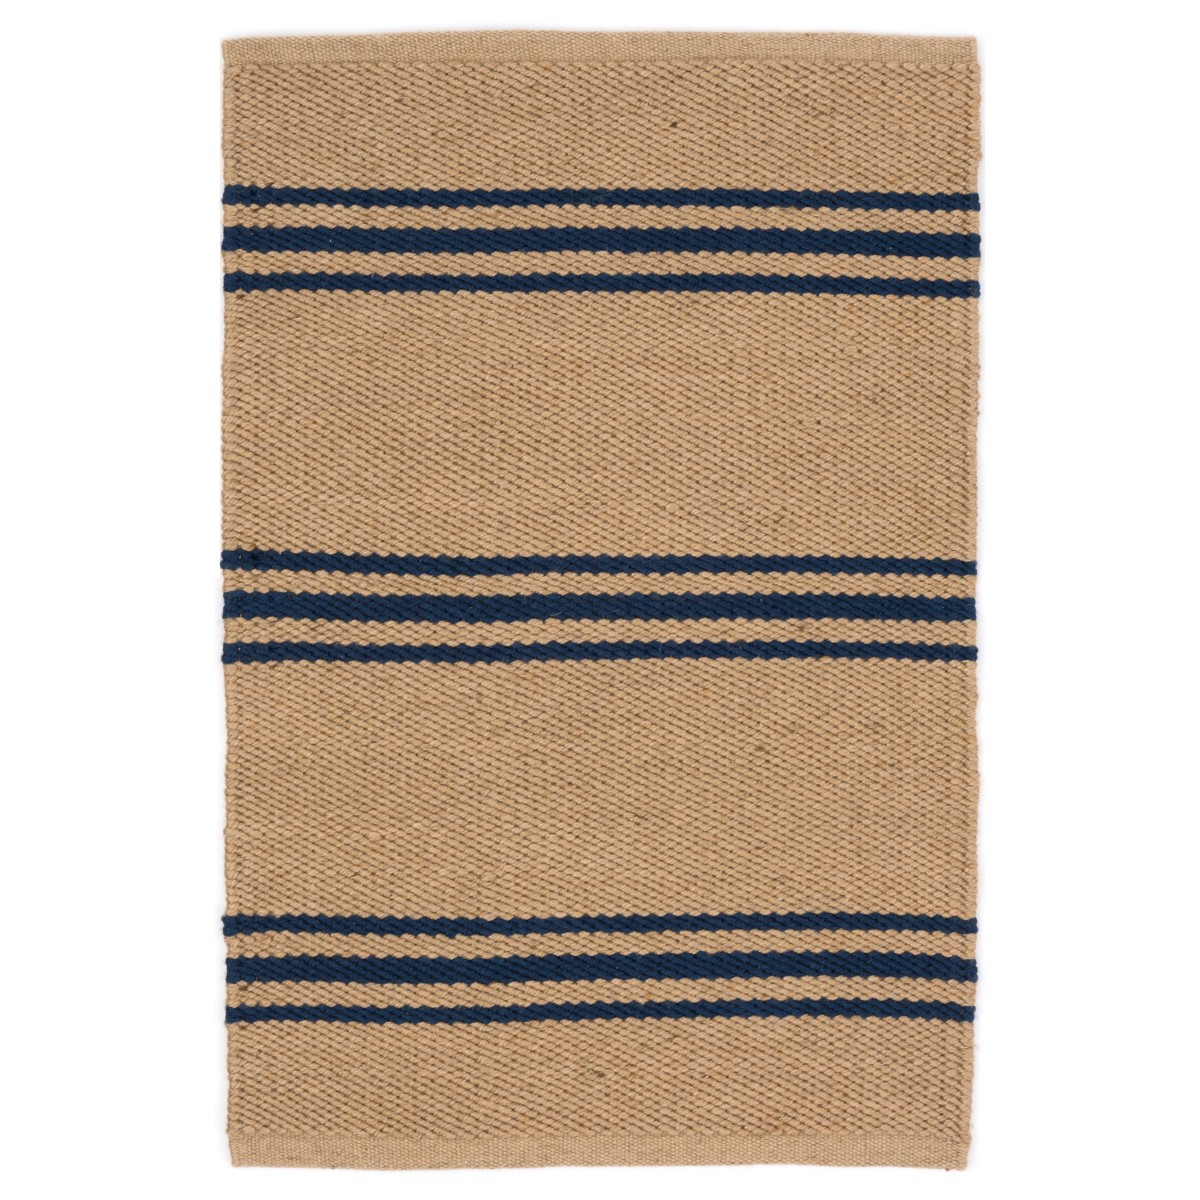 Lexington Indoor/Outdoor Rug - Camel and Navy